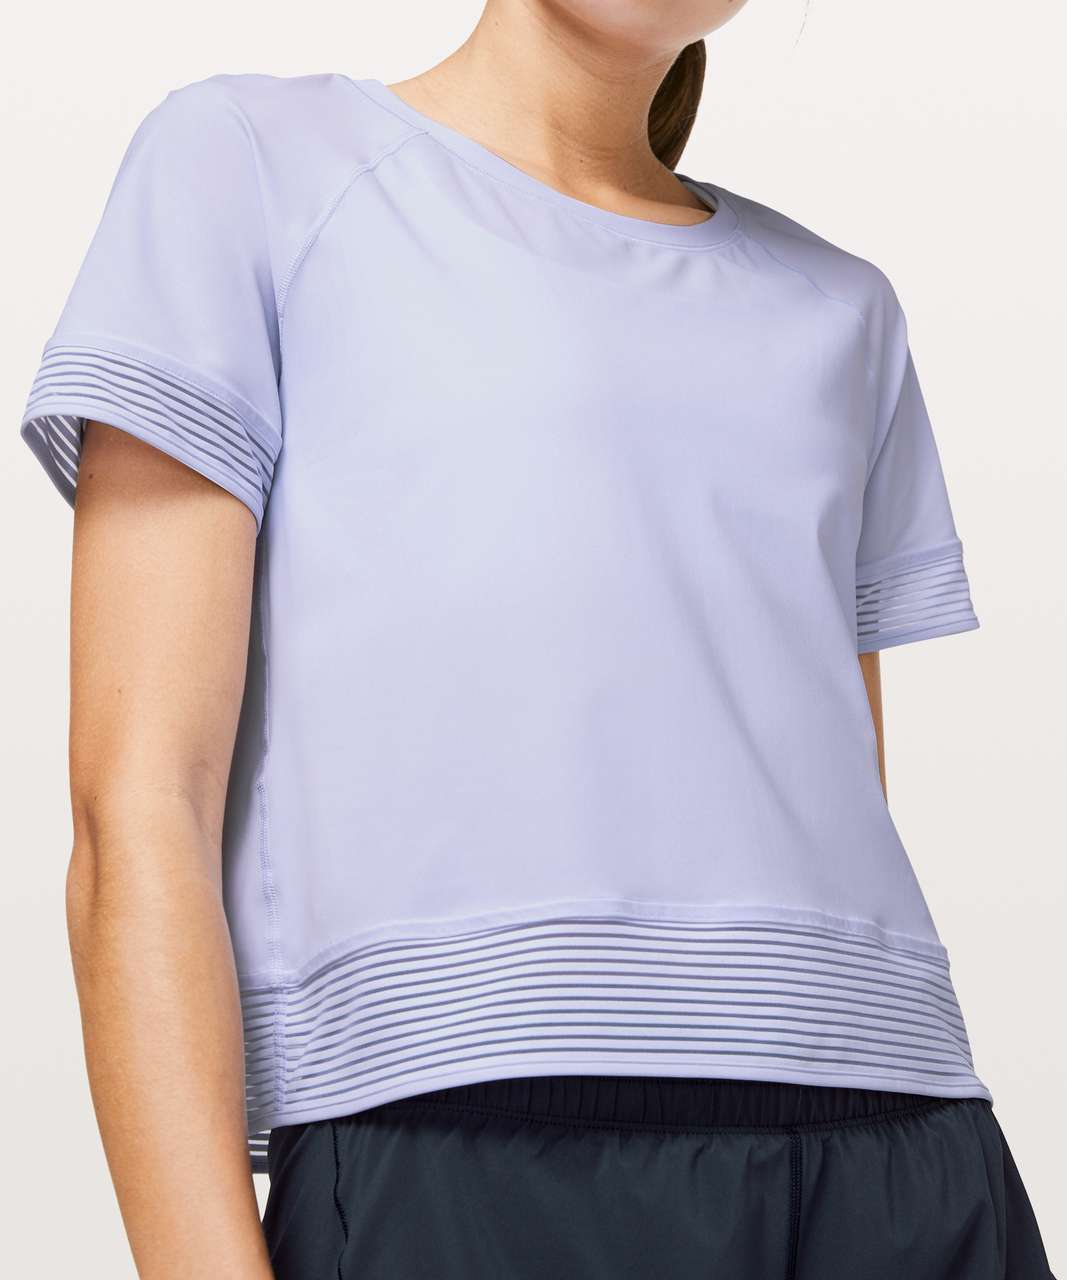 Lululemon Stripe In Stride Short Sleeve - Serene Blue